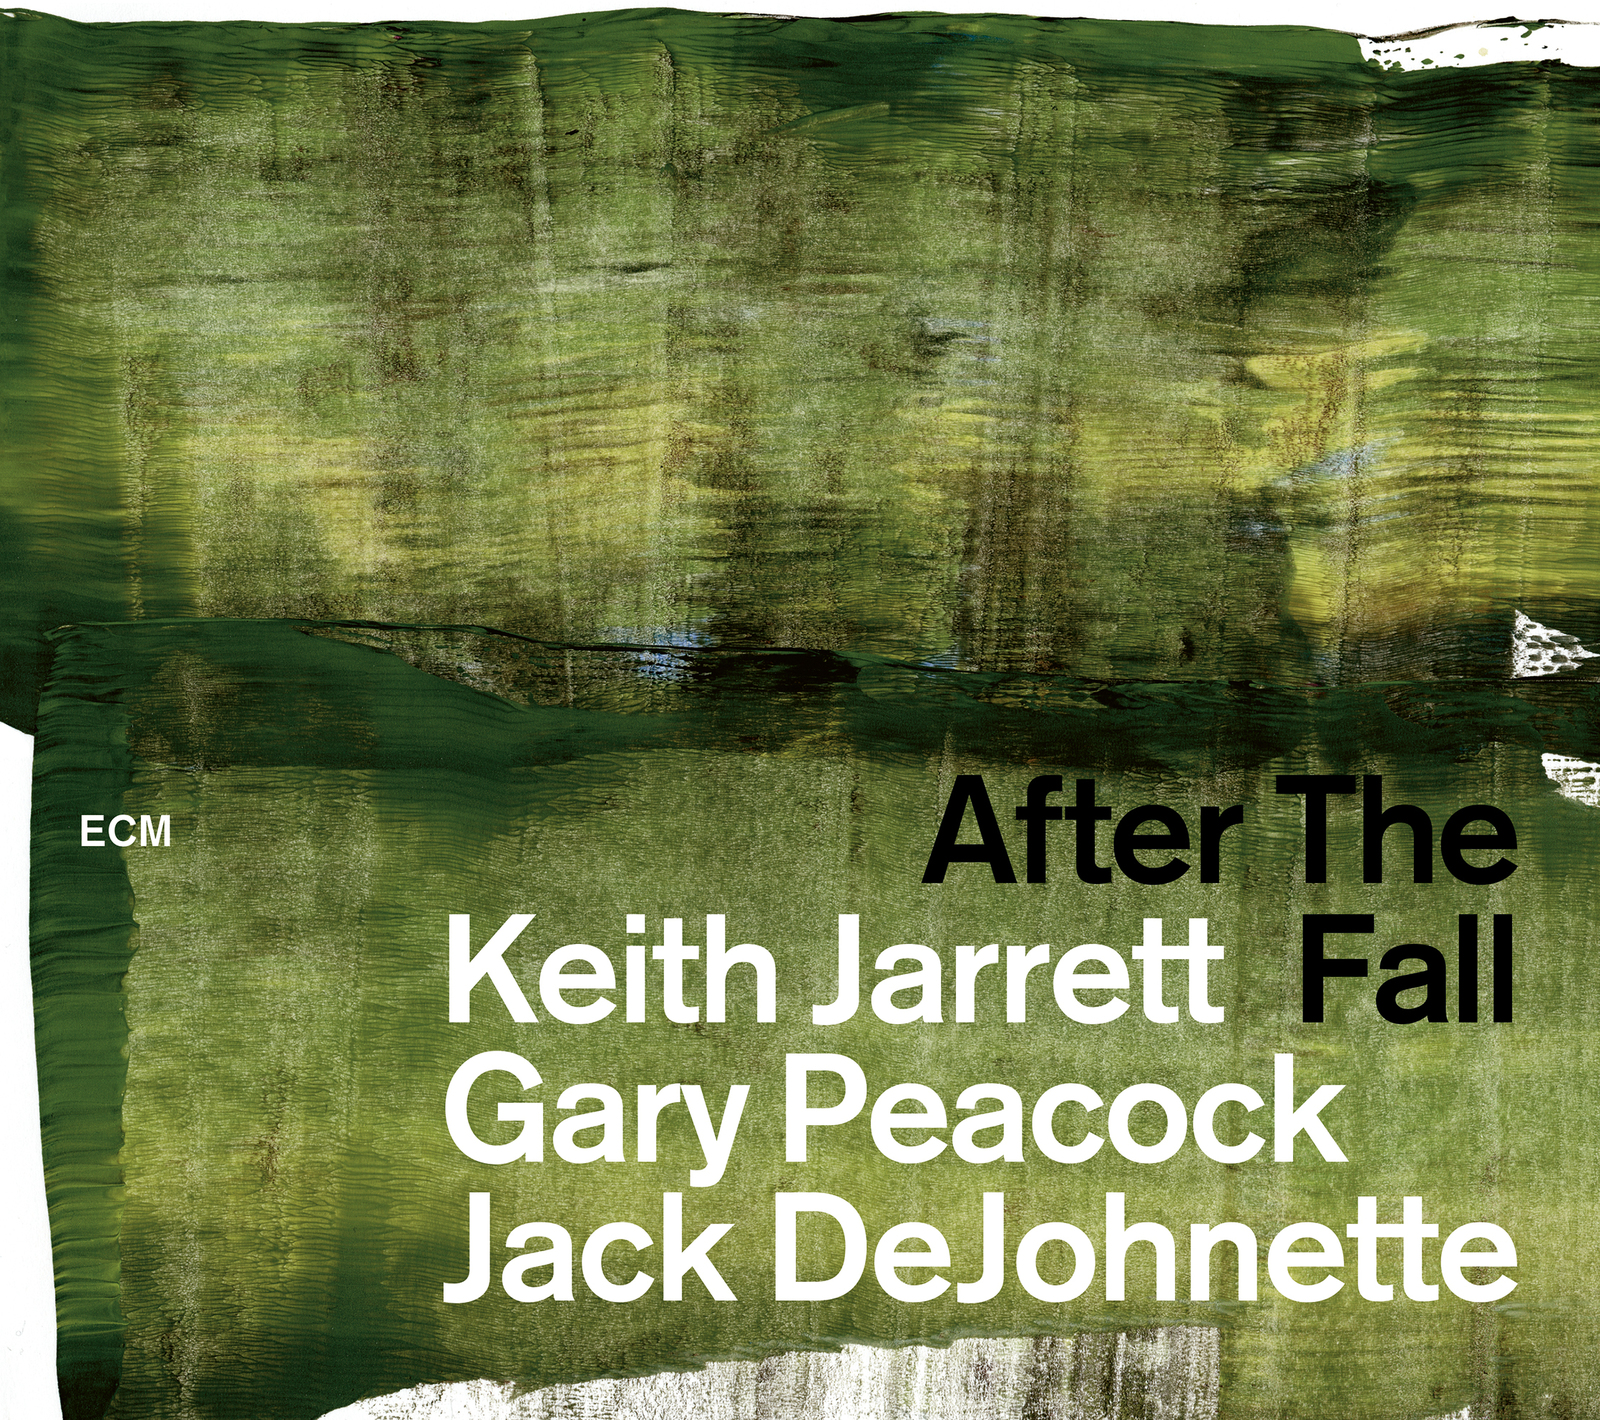 Keith Jarrett, Gary Peacock, Jack DeJohnette, After the Fall, ECM, CD